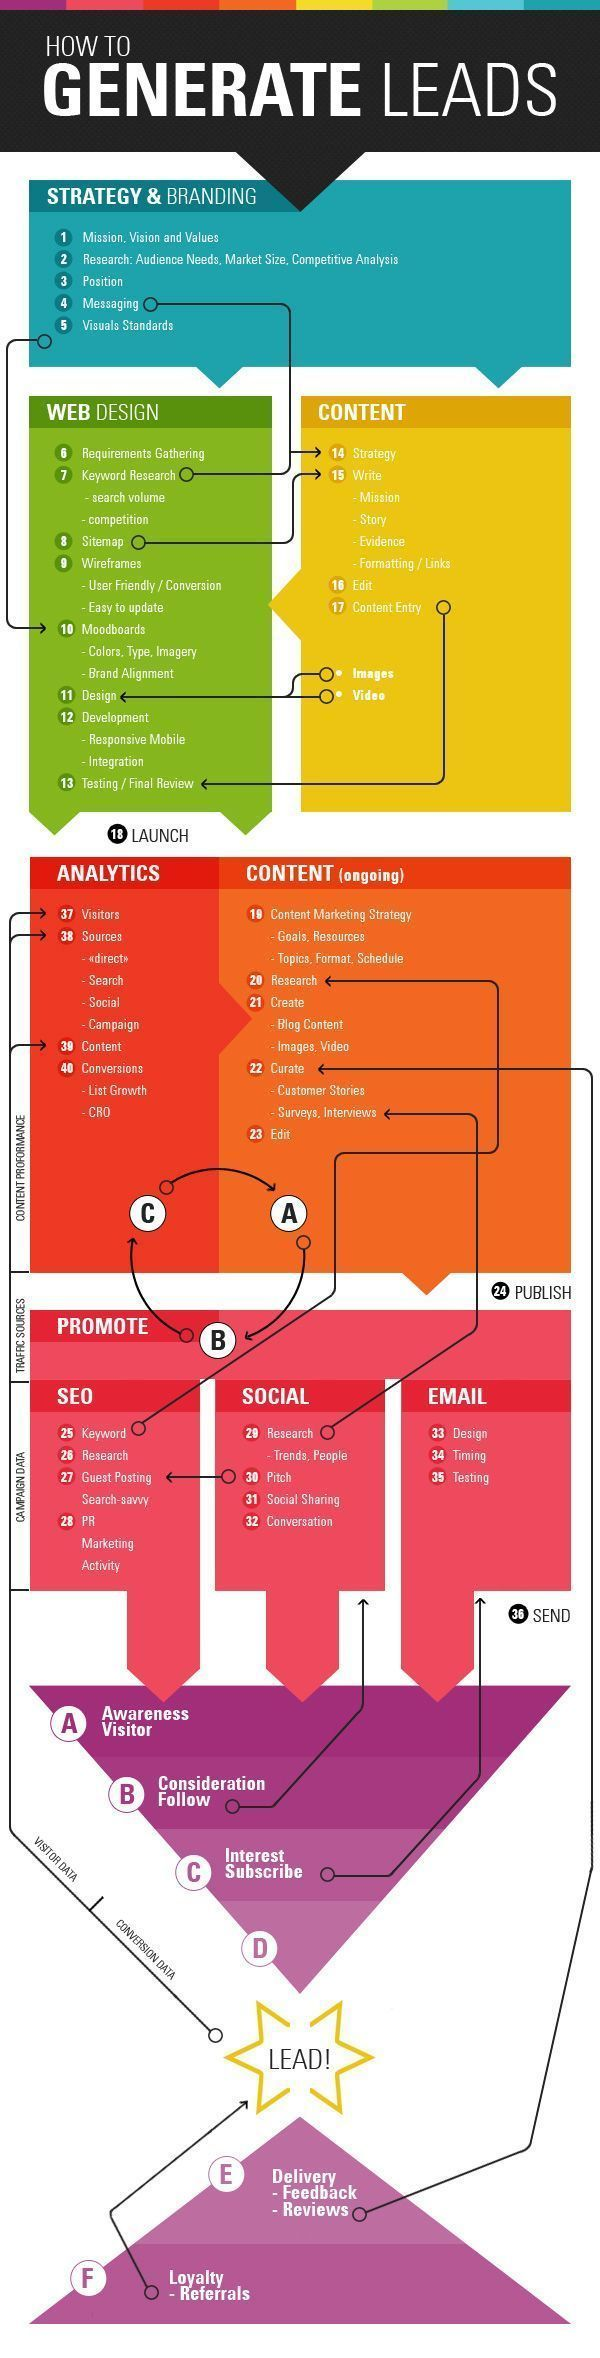 How To Generate Leads?   Marketing Infographics - Use as a reference when developing your business plan.